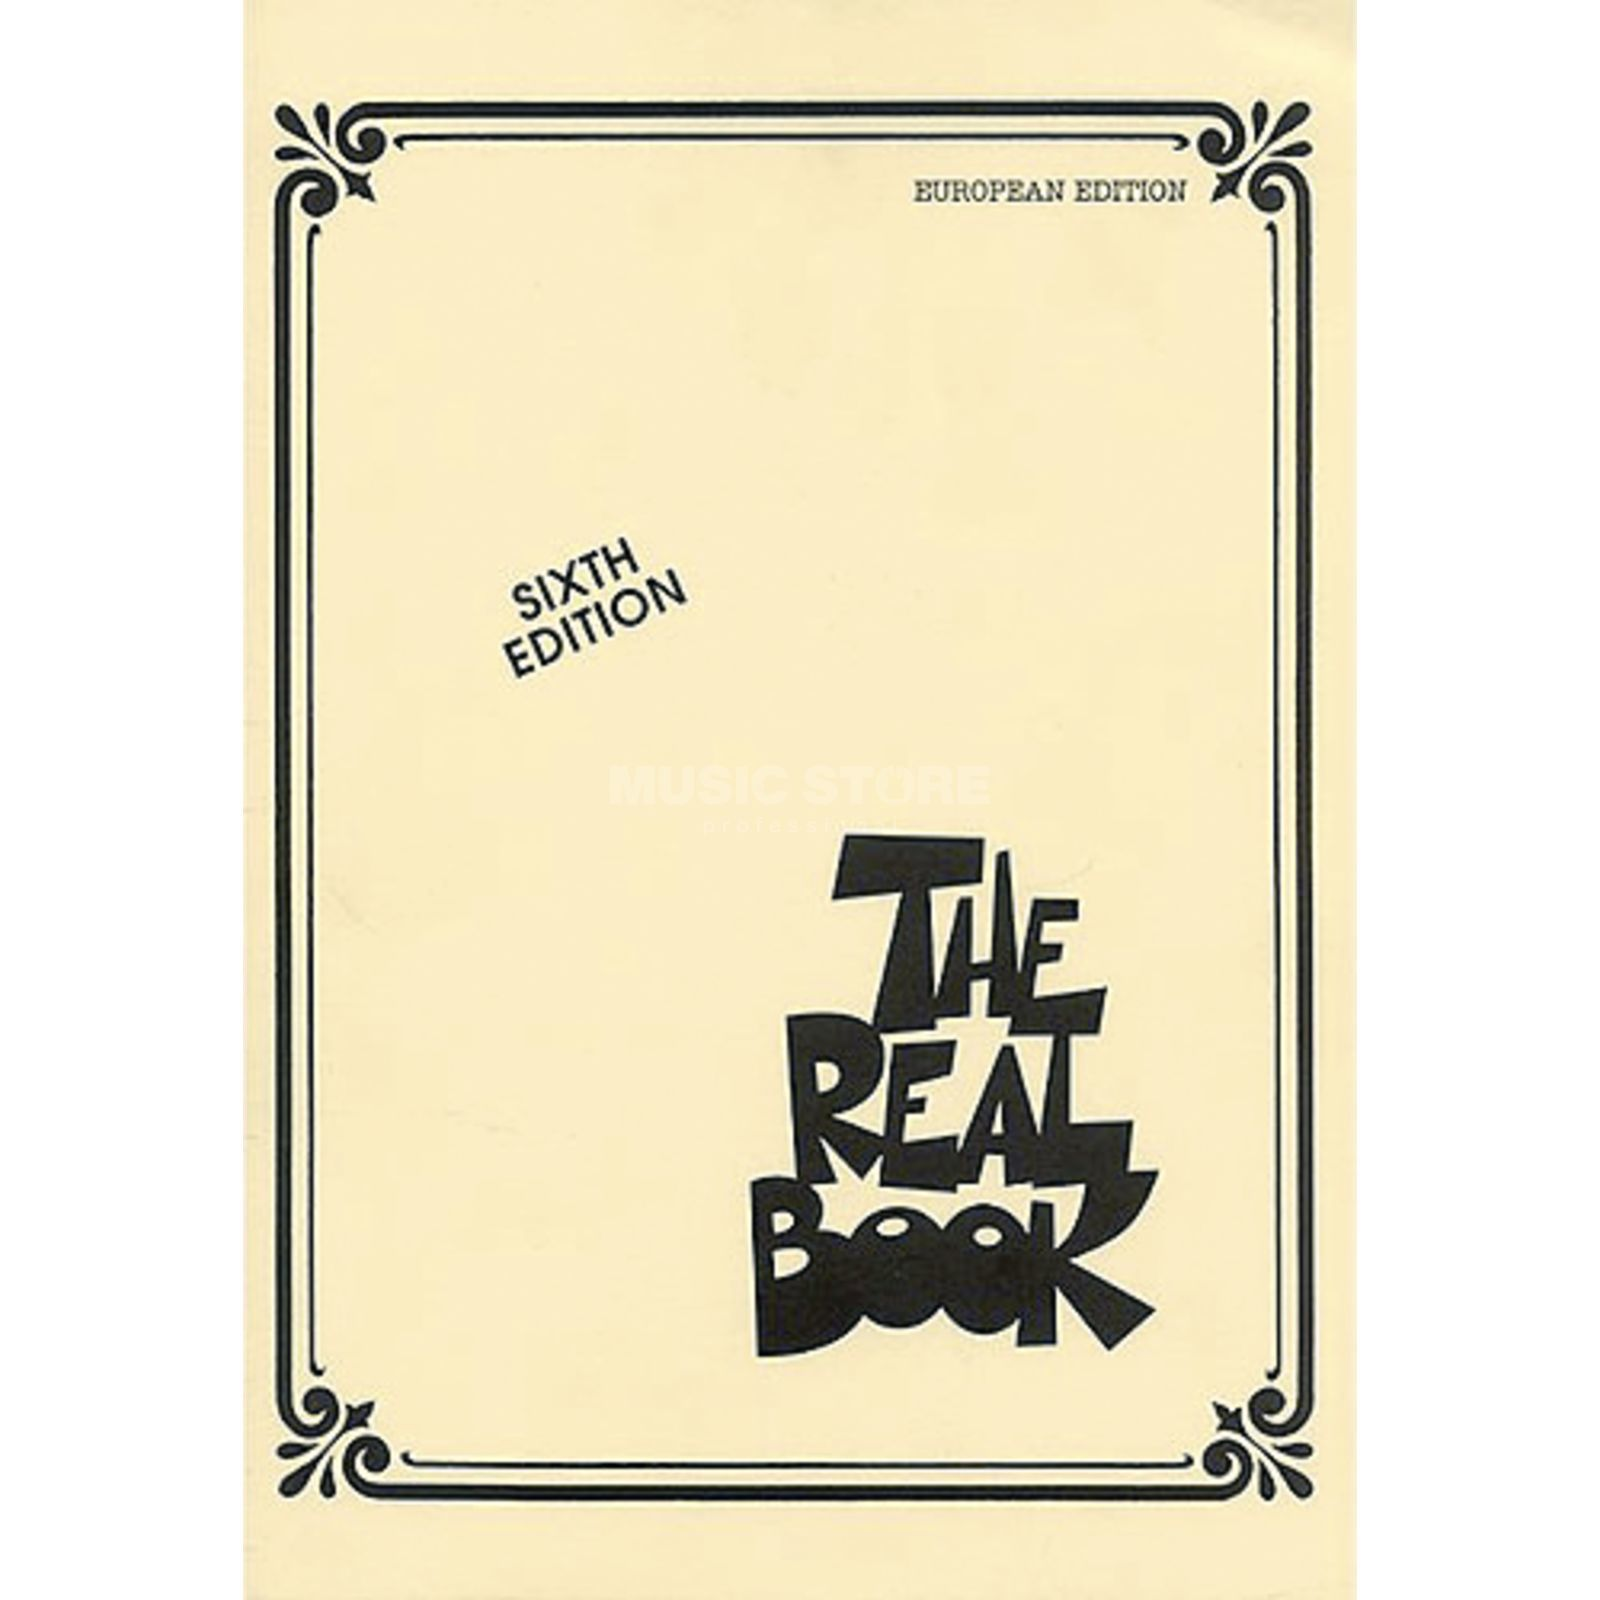 Hal Leonard The Real Book: Volume I C Instrumente - Sixth Edition Produktbillede